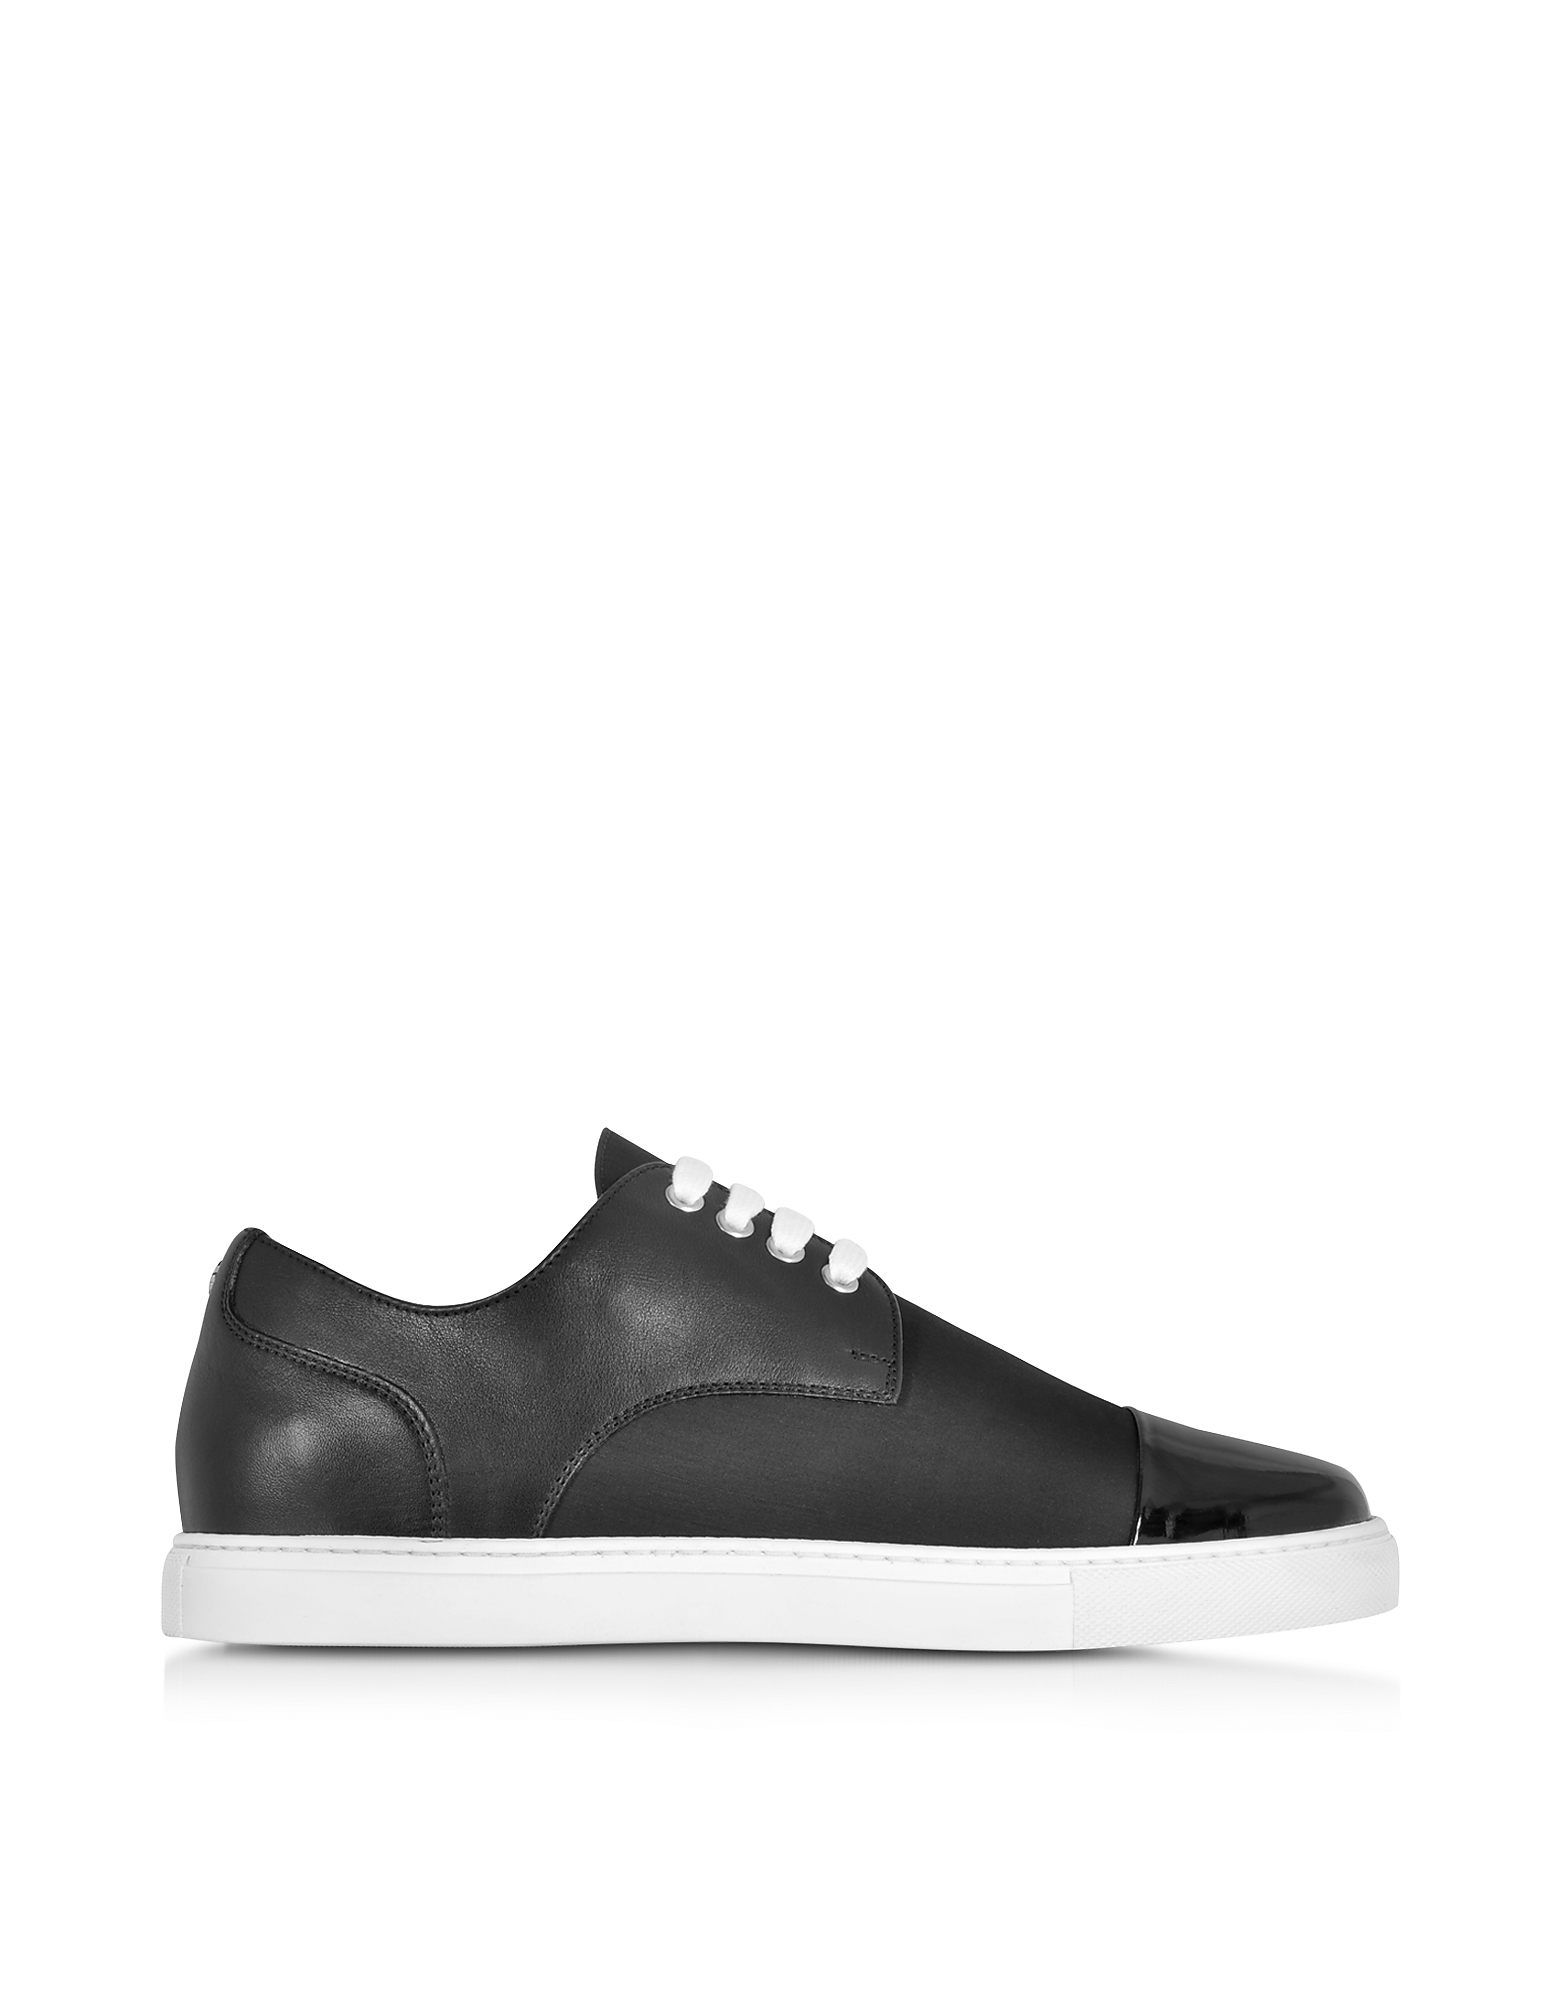 DSquared2 Shoes, Tux Black Leather and Fabric Men's Sneaker